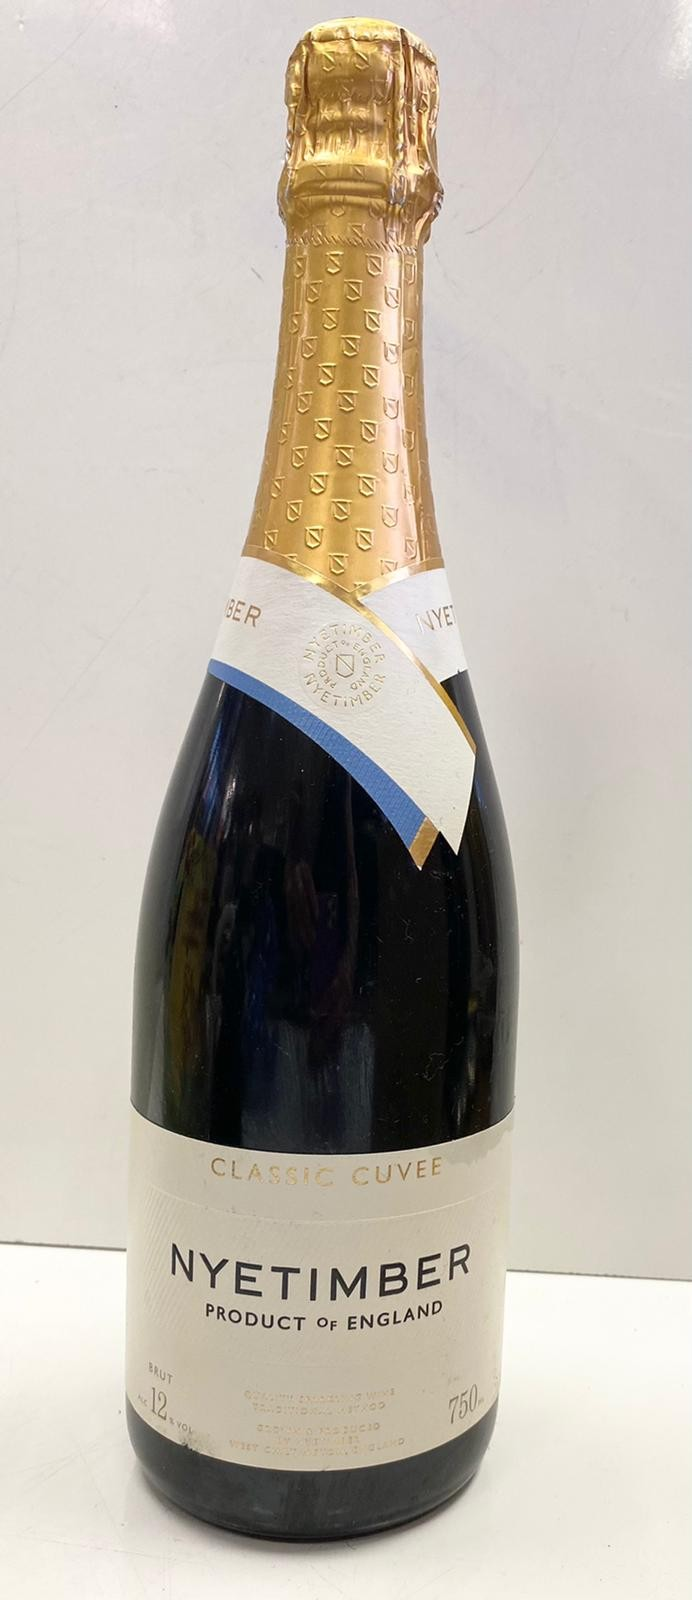 Nyetimber Classic Cuvee NV. Made in UK. 75cl. 12% Vol.